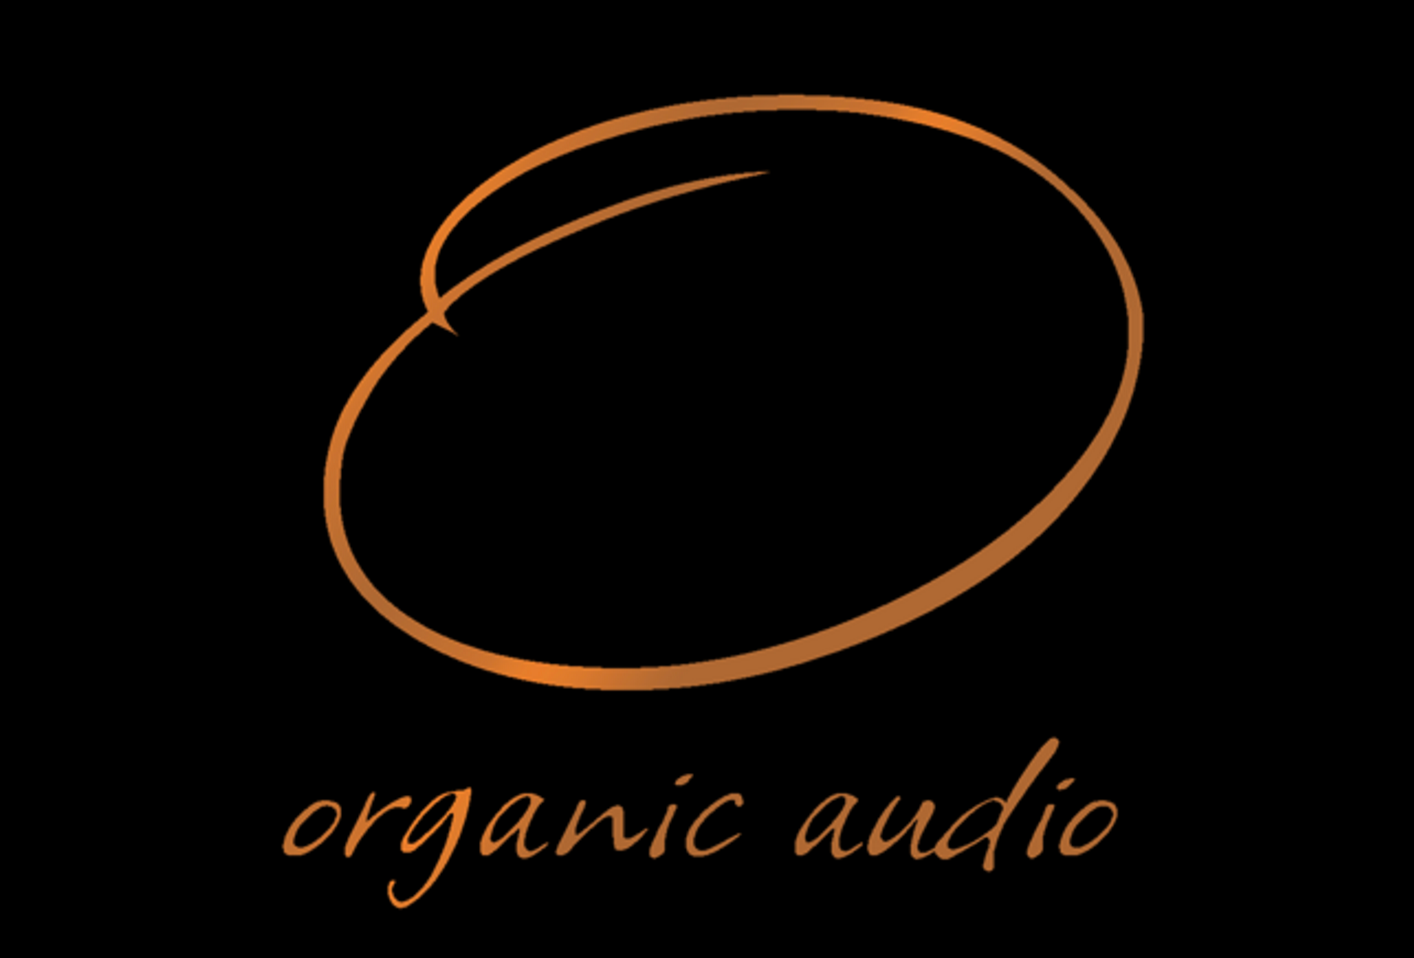 Organic Audio  -Organic is the sister company to Argento,whose purpose is to bring an original, state of the art line of more cost effective, but still high performance, cables to the astute audiophile. Drawing on the unsurpassed knowledge and experience of Argento Audio these cables lack nothing in terms of commitment to quality and performance. The materials used are still of the highest quality in their class.